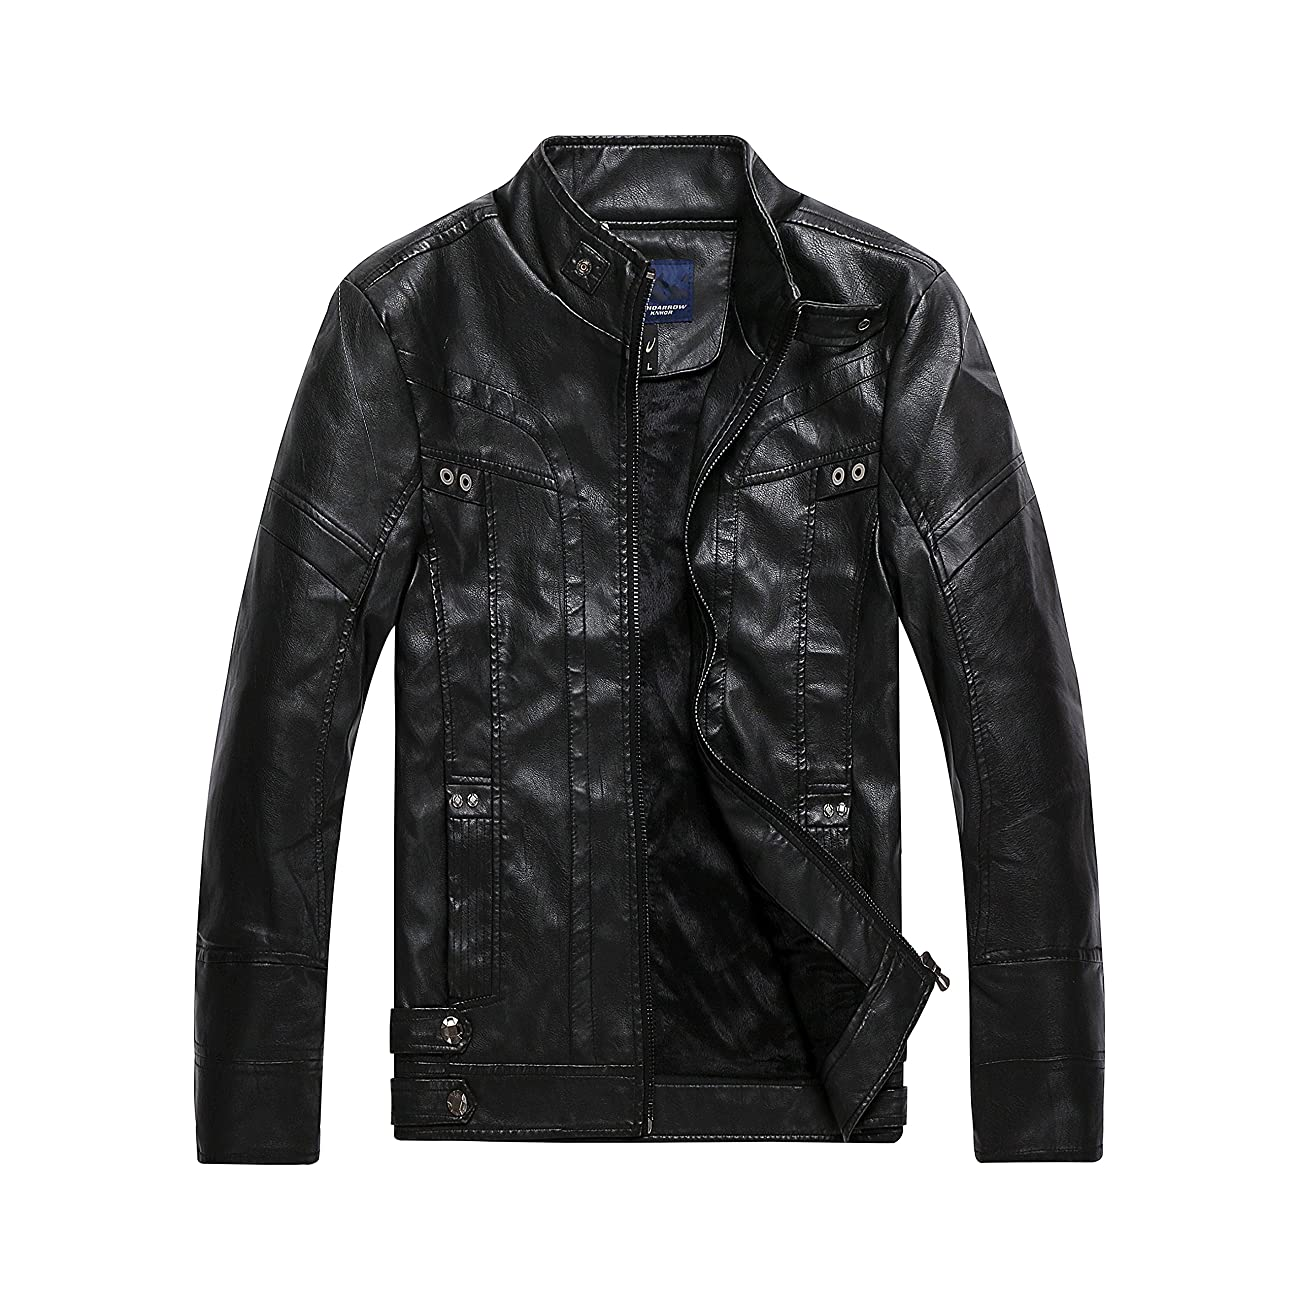 Men's Vintage Stand Collar Faux Leather Jacket 0